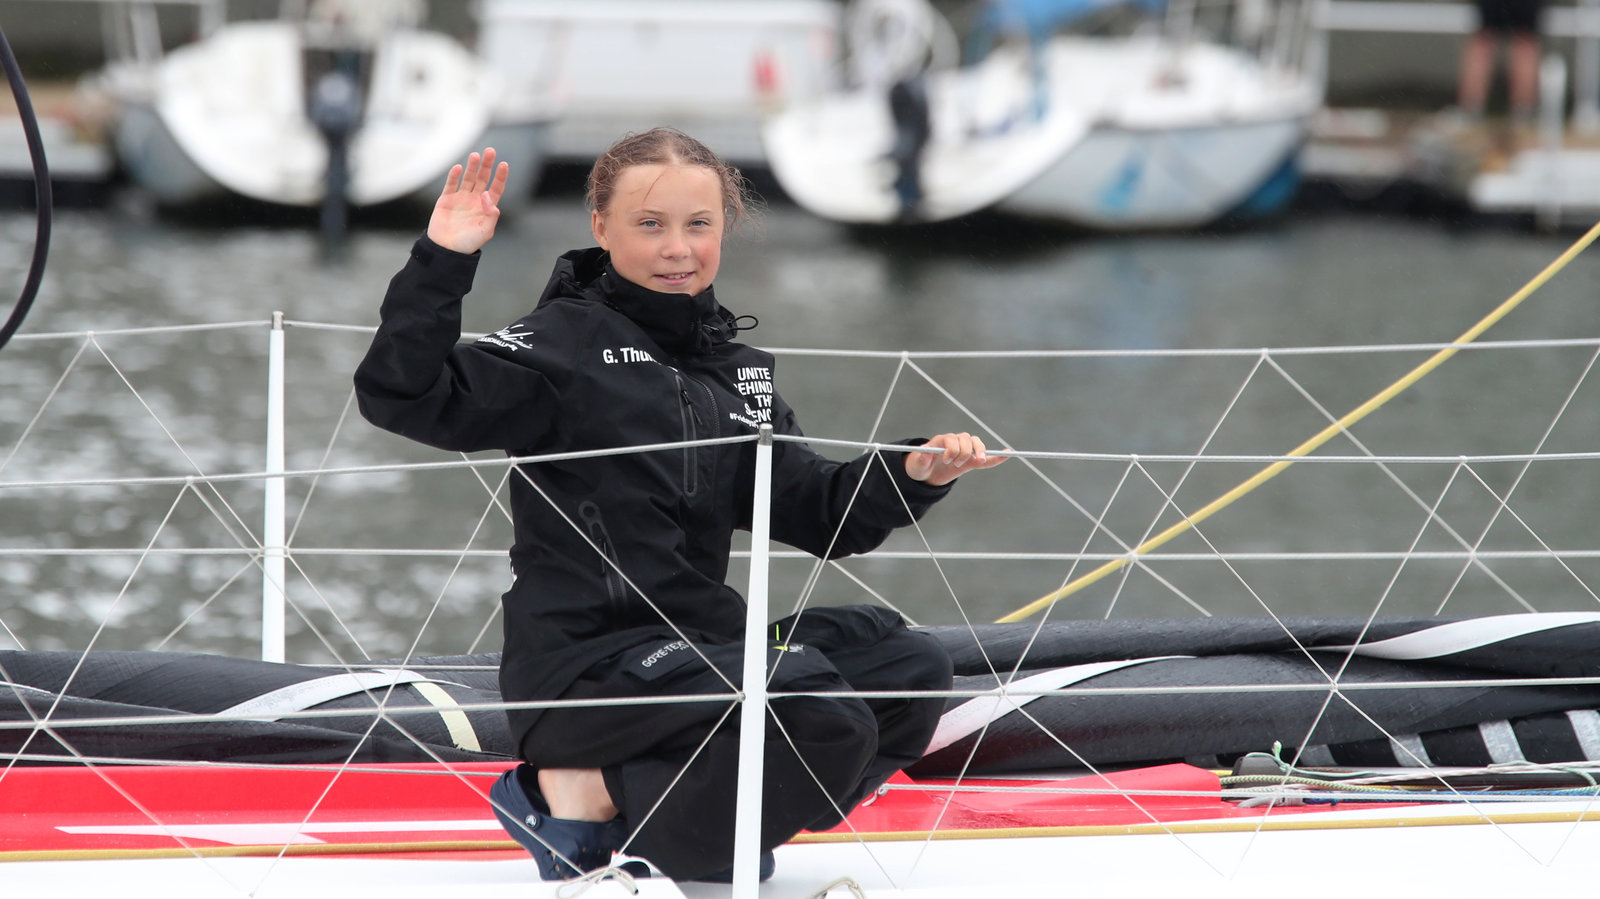 Greta Thunberg sailed from the UK to New York City for the Climate Strike to emphasize the need to reduce carbon-emission damage to the planet. Mary Altaffer/AP